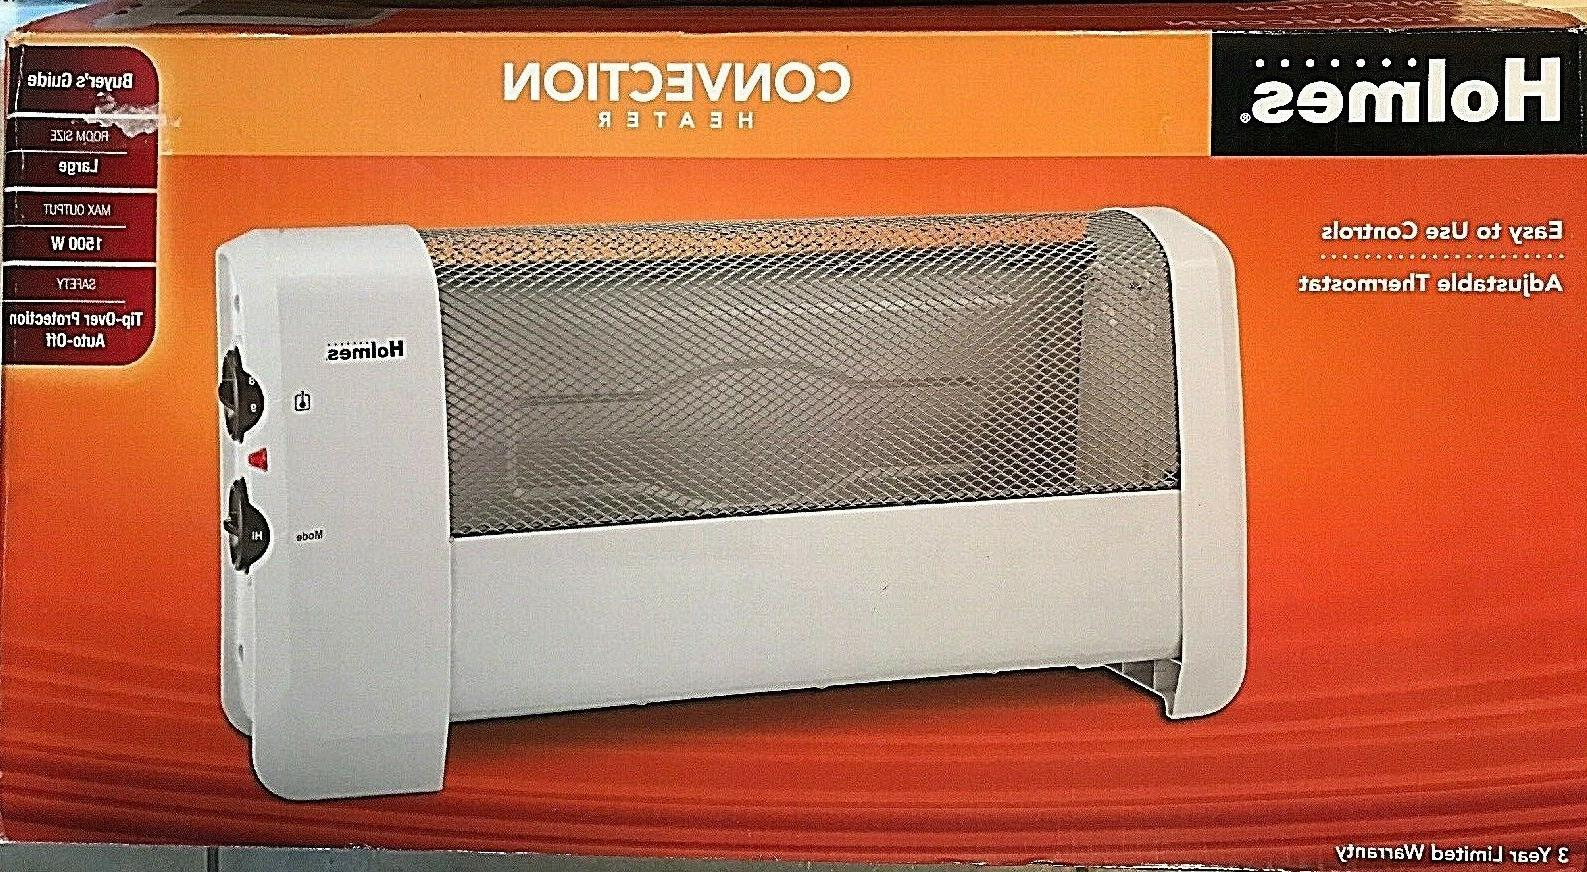 hlh4422m convection portable space heater large room